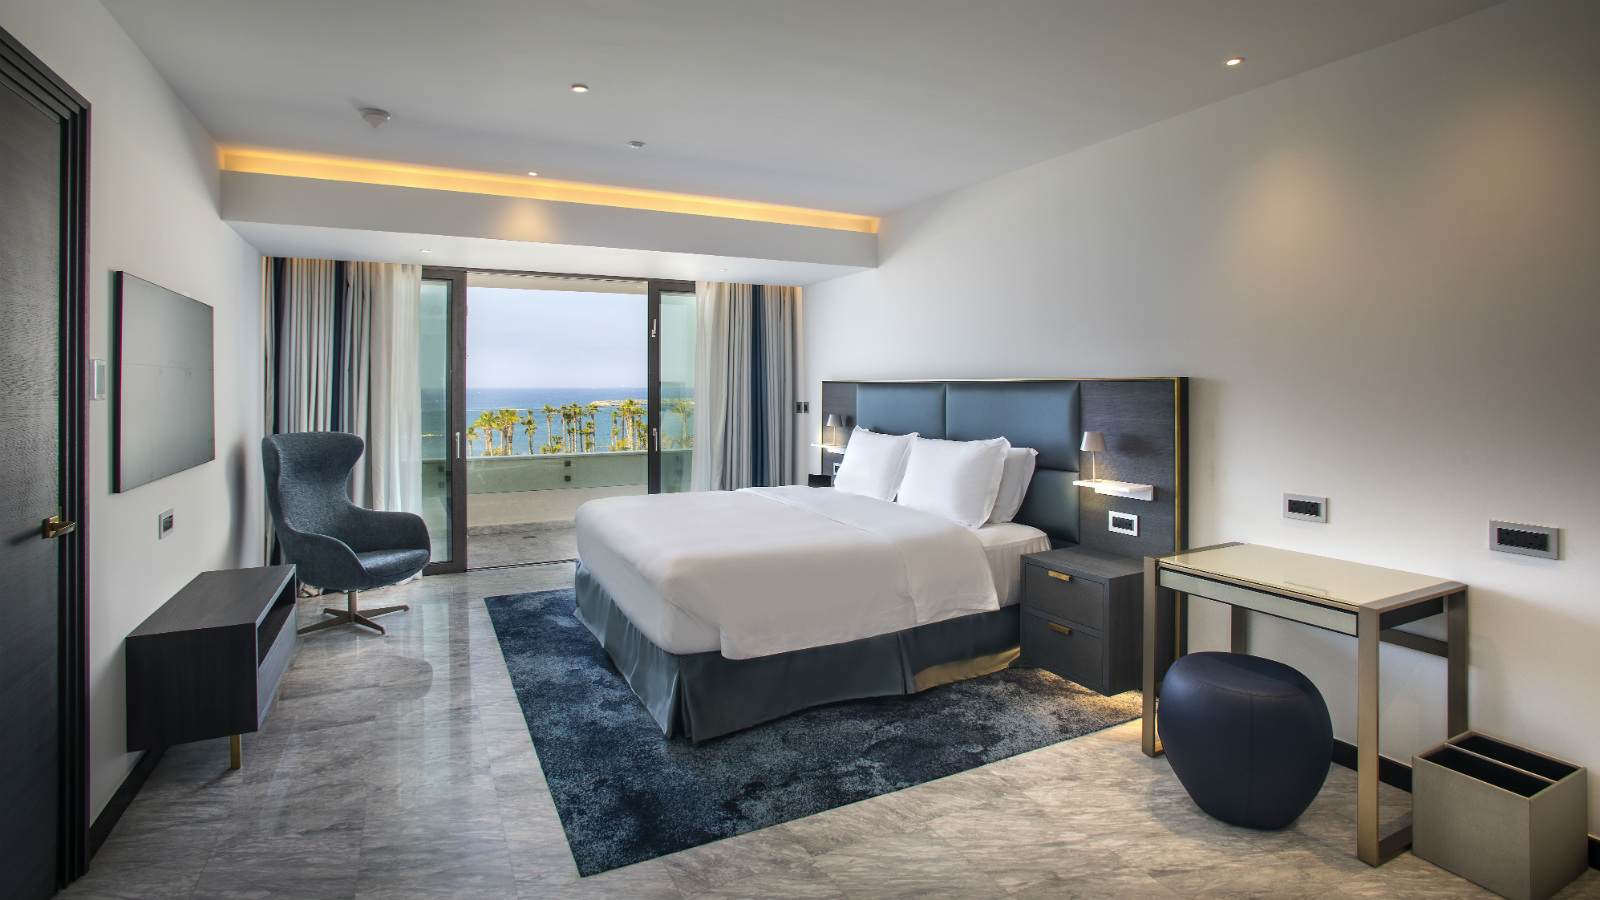 Lifestyle Suite (Adults Only), Bedroom